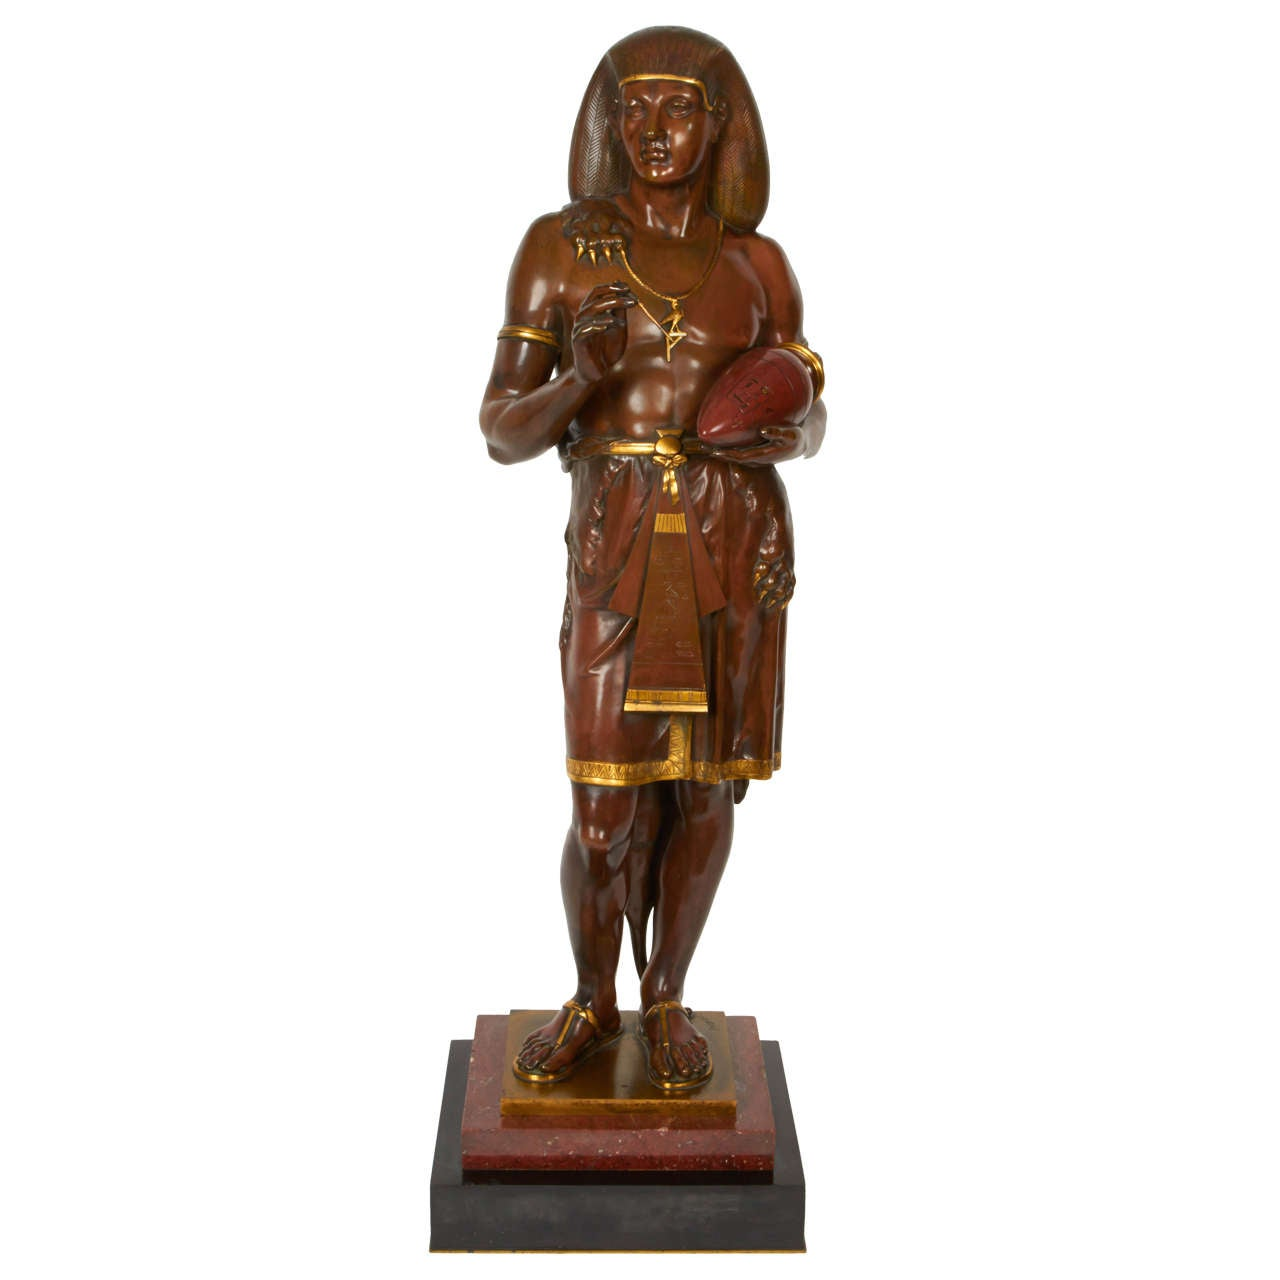 Emile Louis Picault, Bronze Figure of an Egyptian Scribe